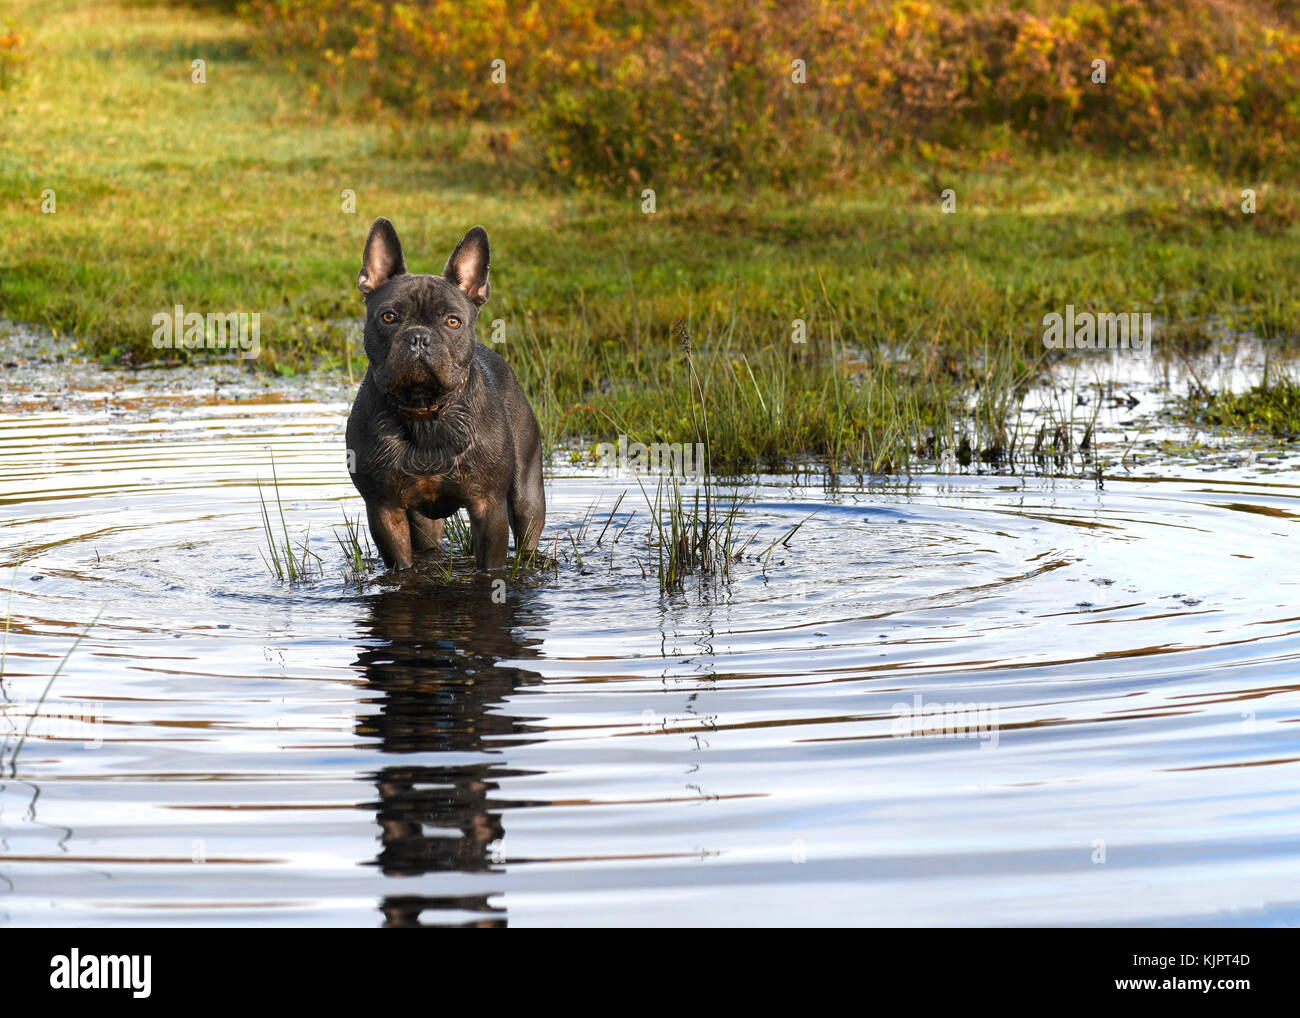 blue french bulldog stood in a stream after playing in the late afternoon sun ,looking int camera with blurred background - Stock Image